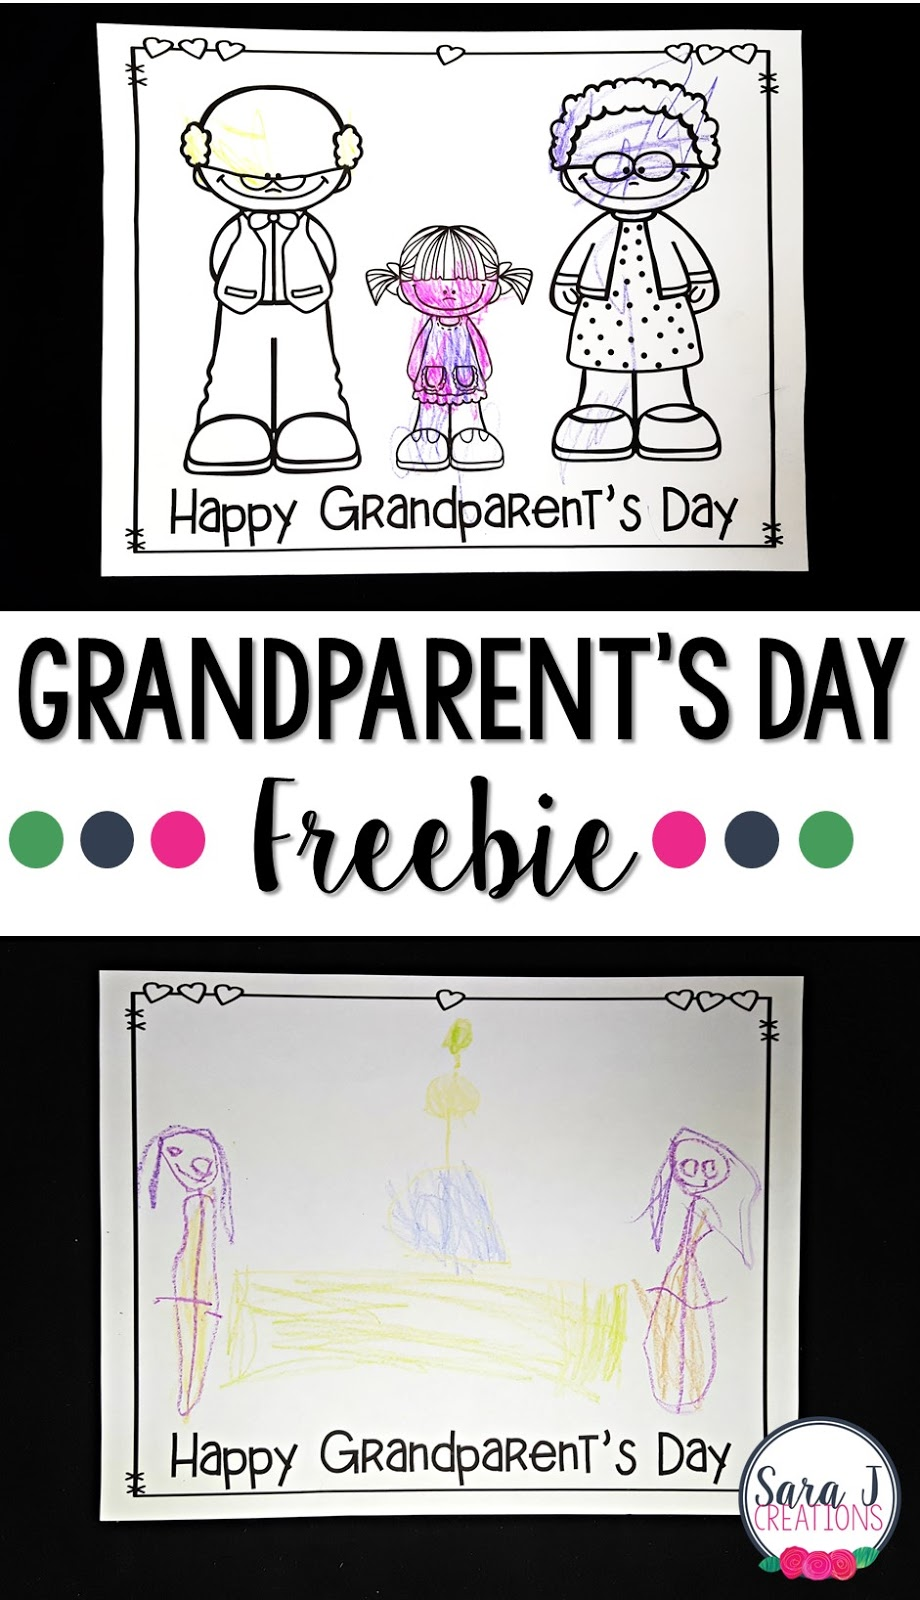 FREE grandparent's day printable gift idea